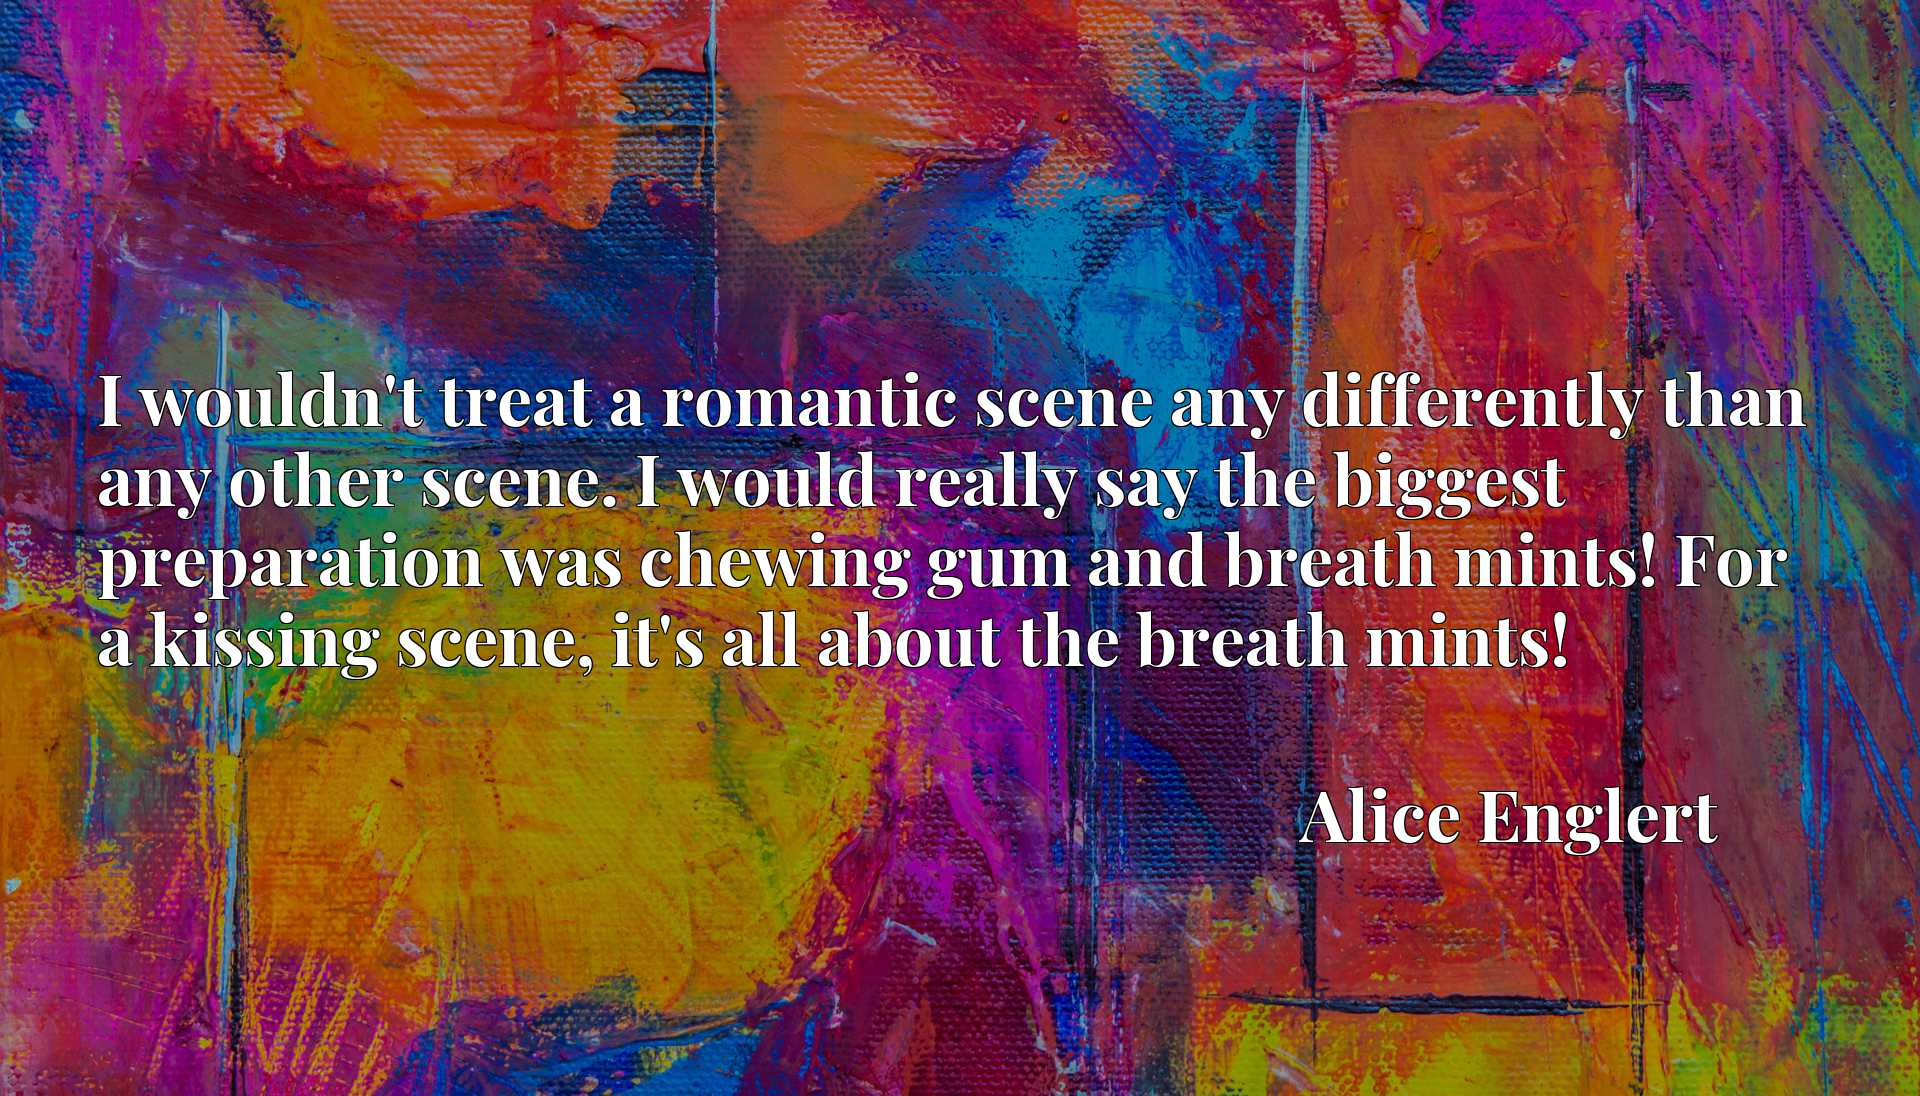 I wouldn't treat a romantic scene any differently than any other scene. I would really say the biggest preparation was chewing gum and breath mints! For a kissing scene, it's all about the breath mints!